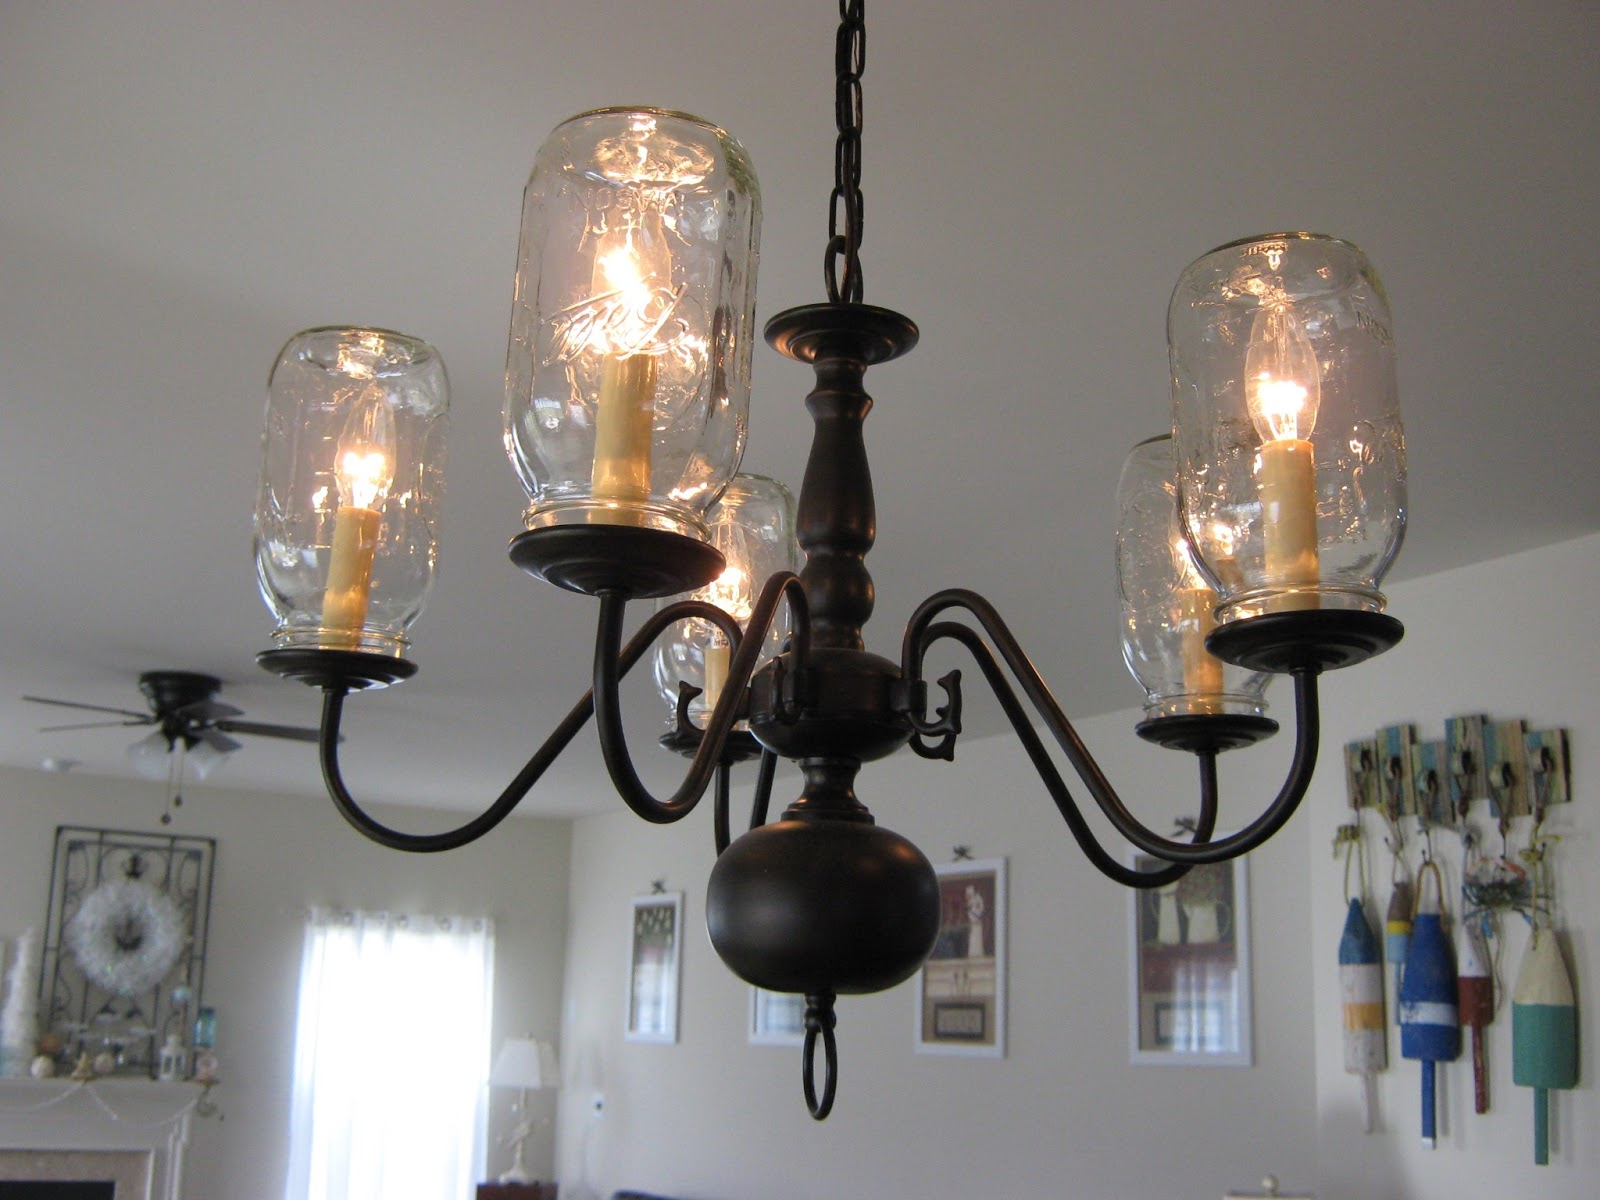 Fake it frugal fake pottery barn mason jar chandelier fake pottery barn mason jar chandelier arubaitofo Image collections